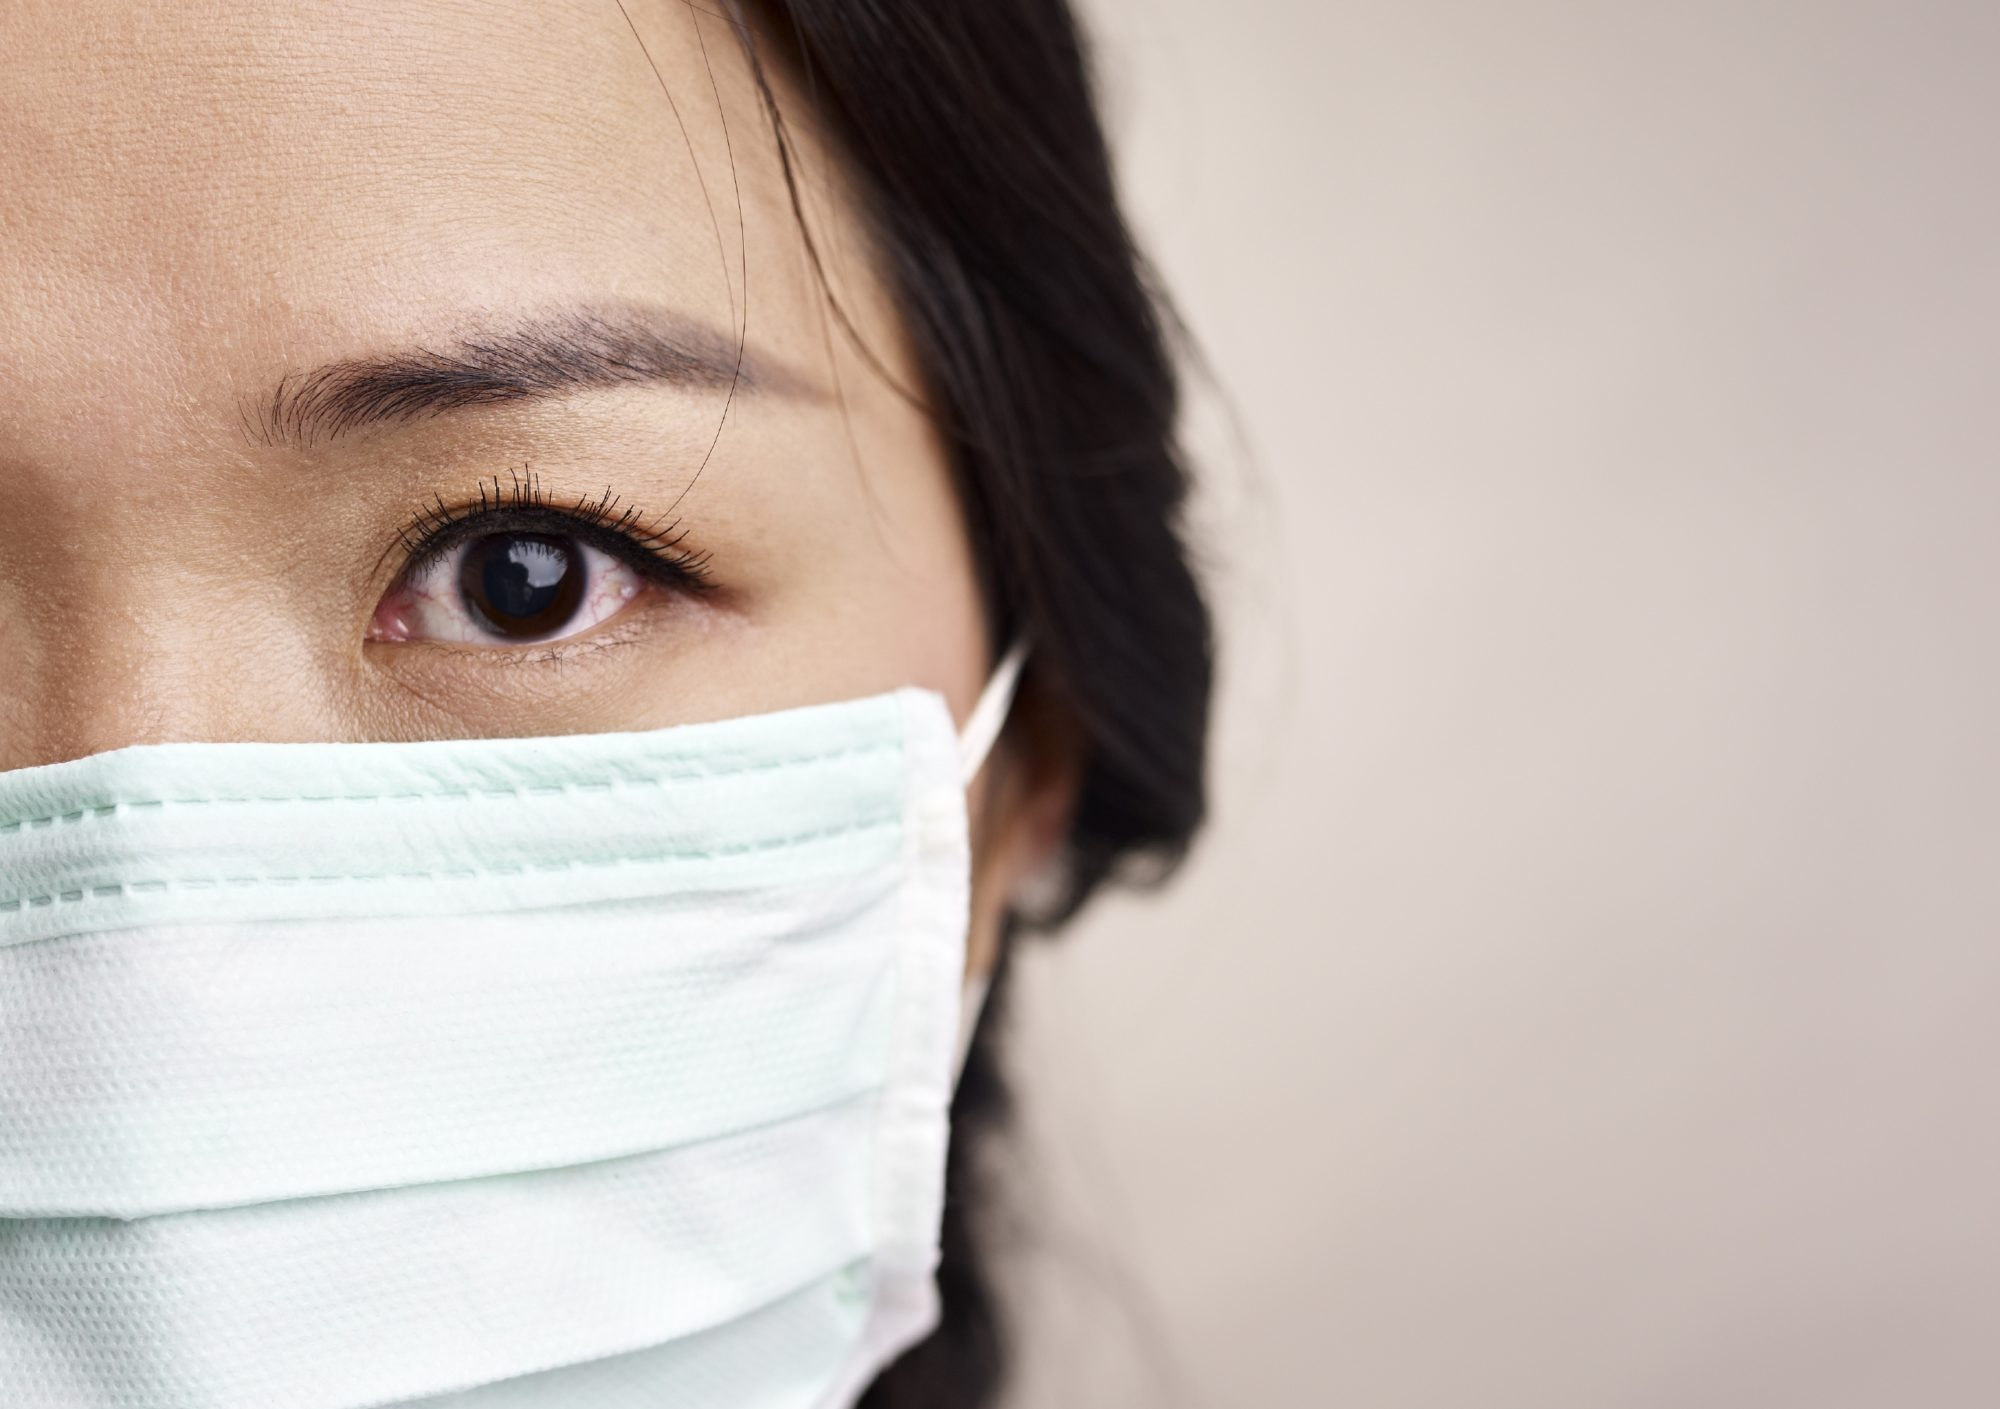 Coronavirus: Face Masks May Not Work As Well As You Think